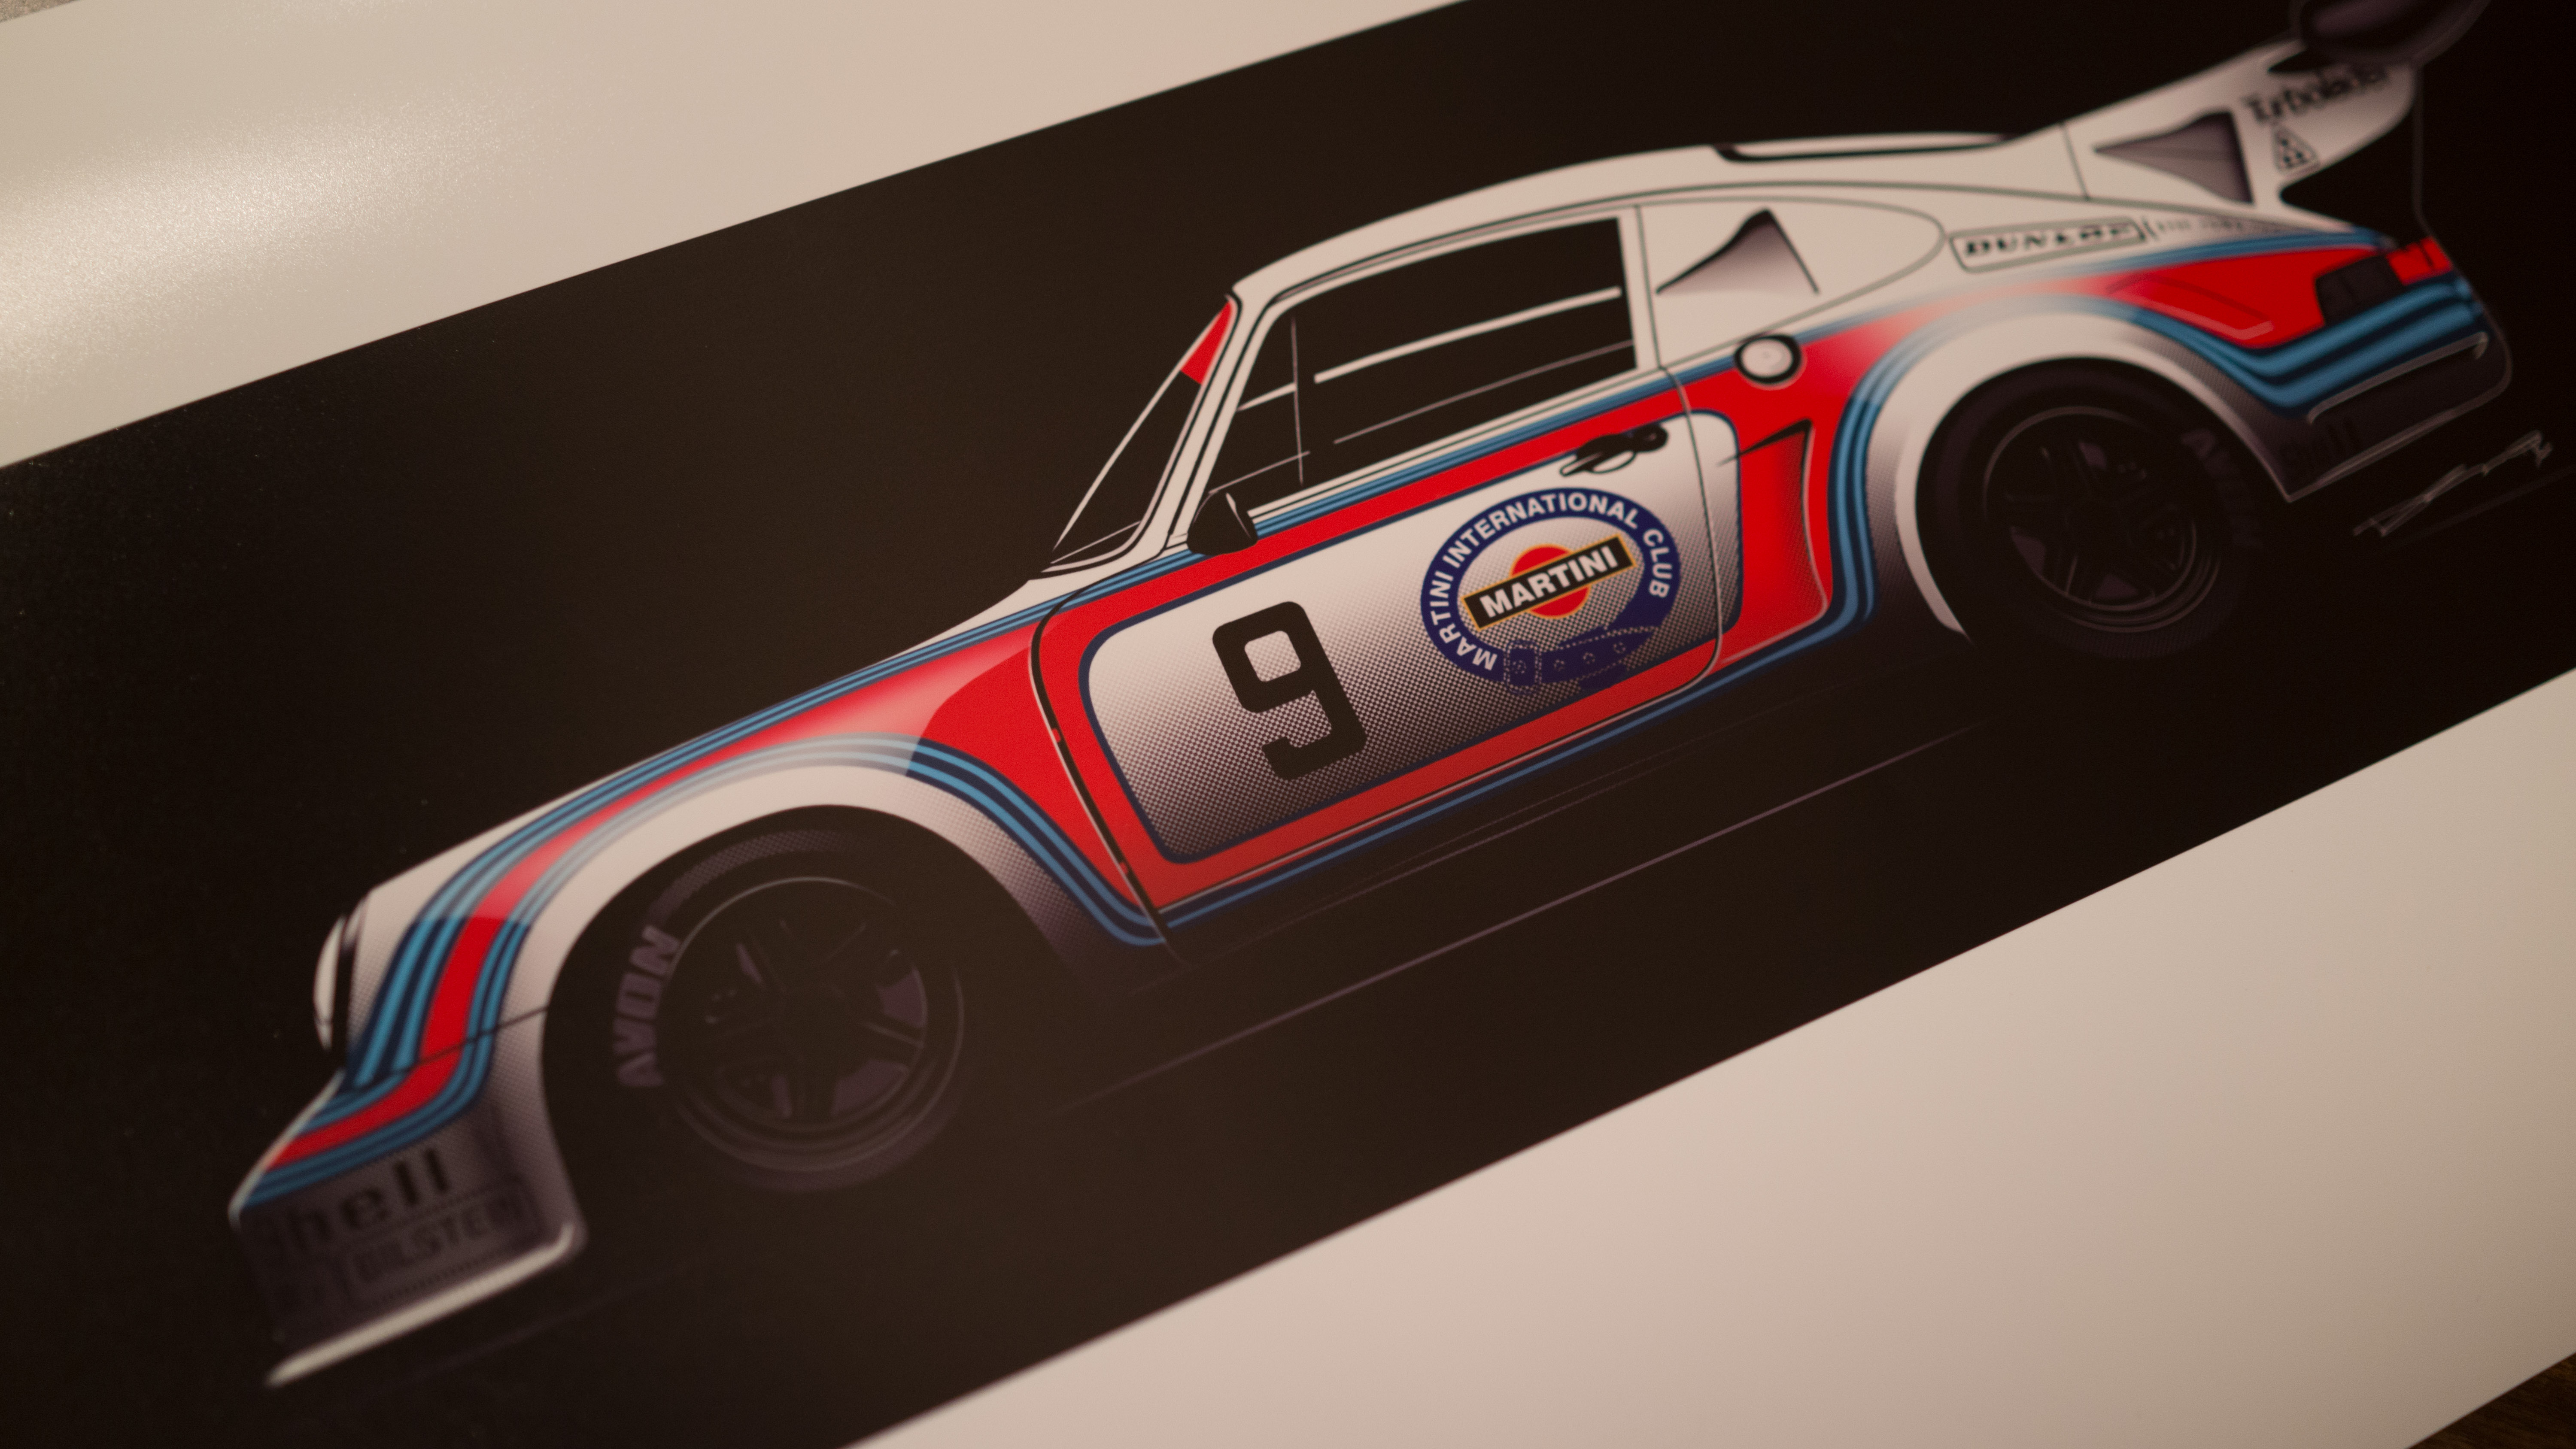 martini racing porsche 911 rsr turbo sideview 20 piece. Black Bedroom Furniture Sets. Home Design Ideas